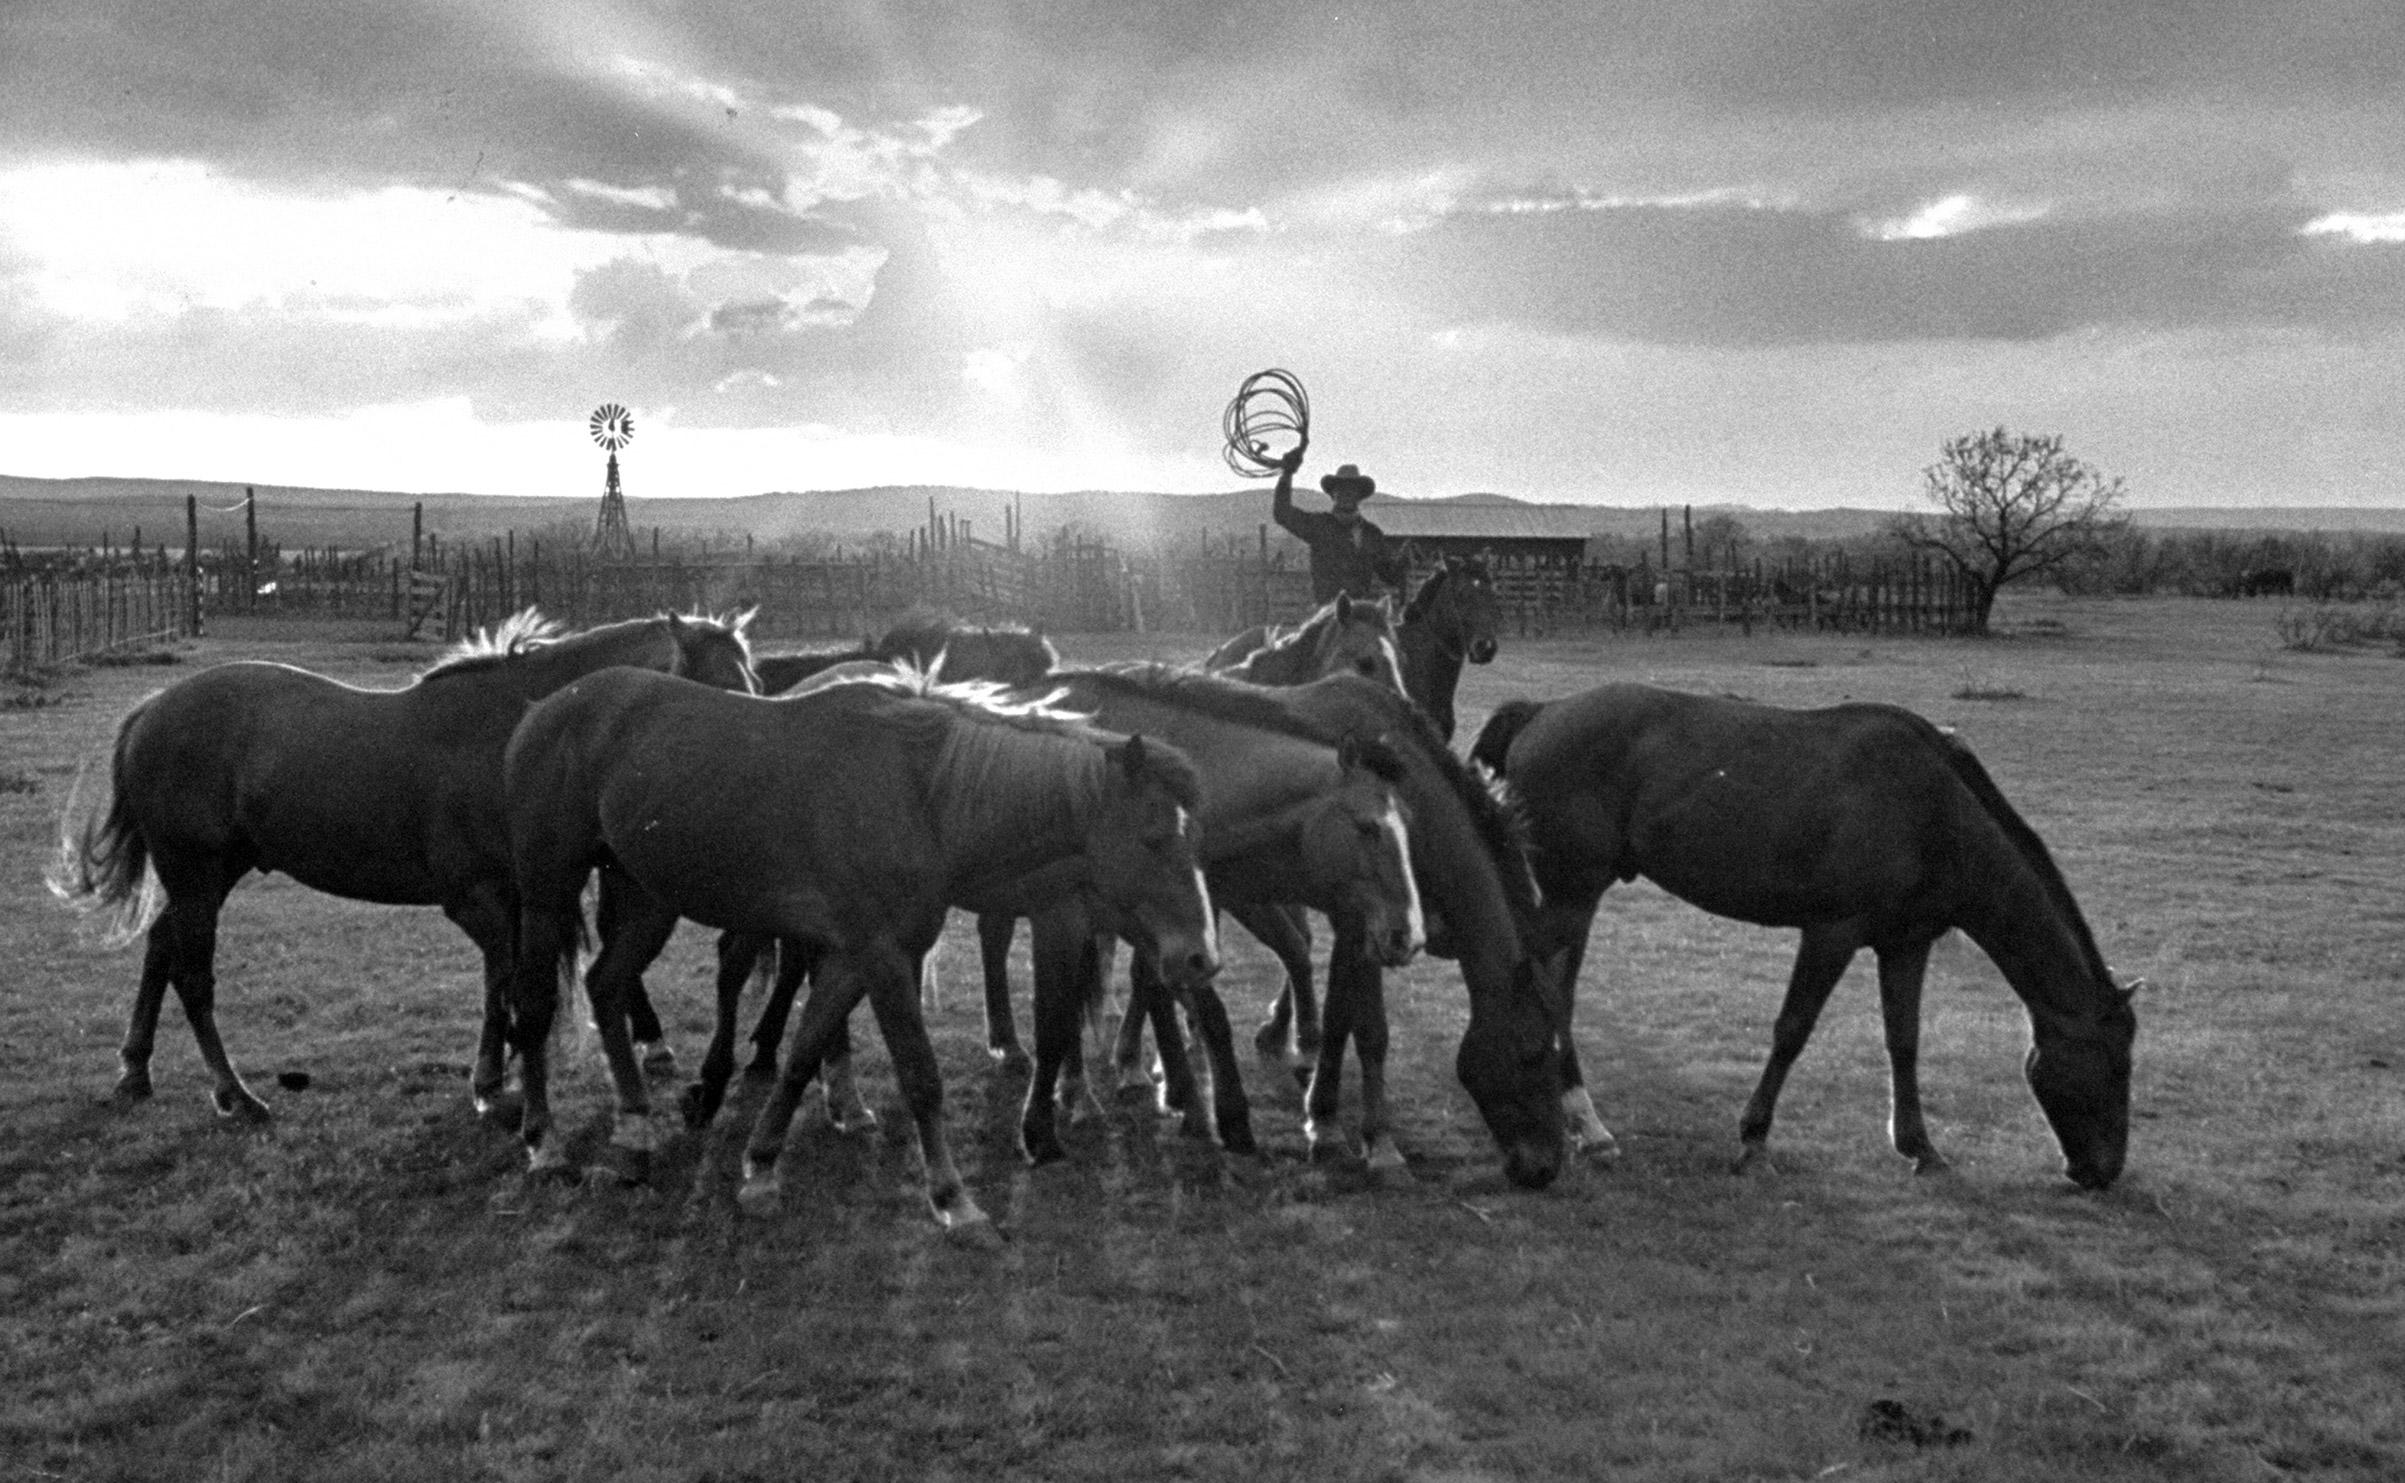 Caption from LIFE. At sunset after a day's work, he collects his string of horses, considers which of the young ones to pick for a training session.